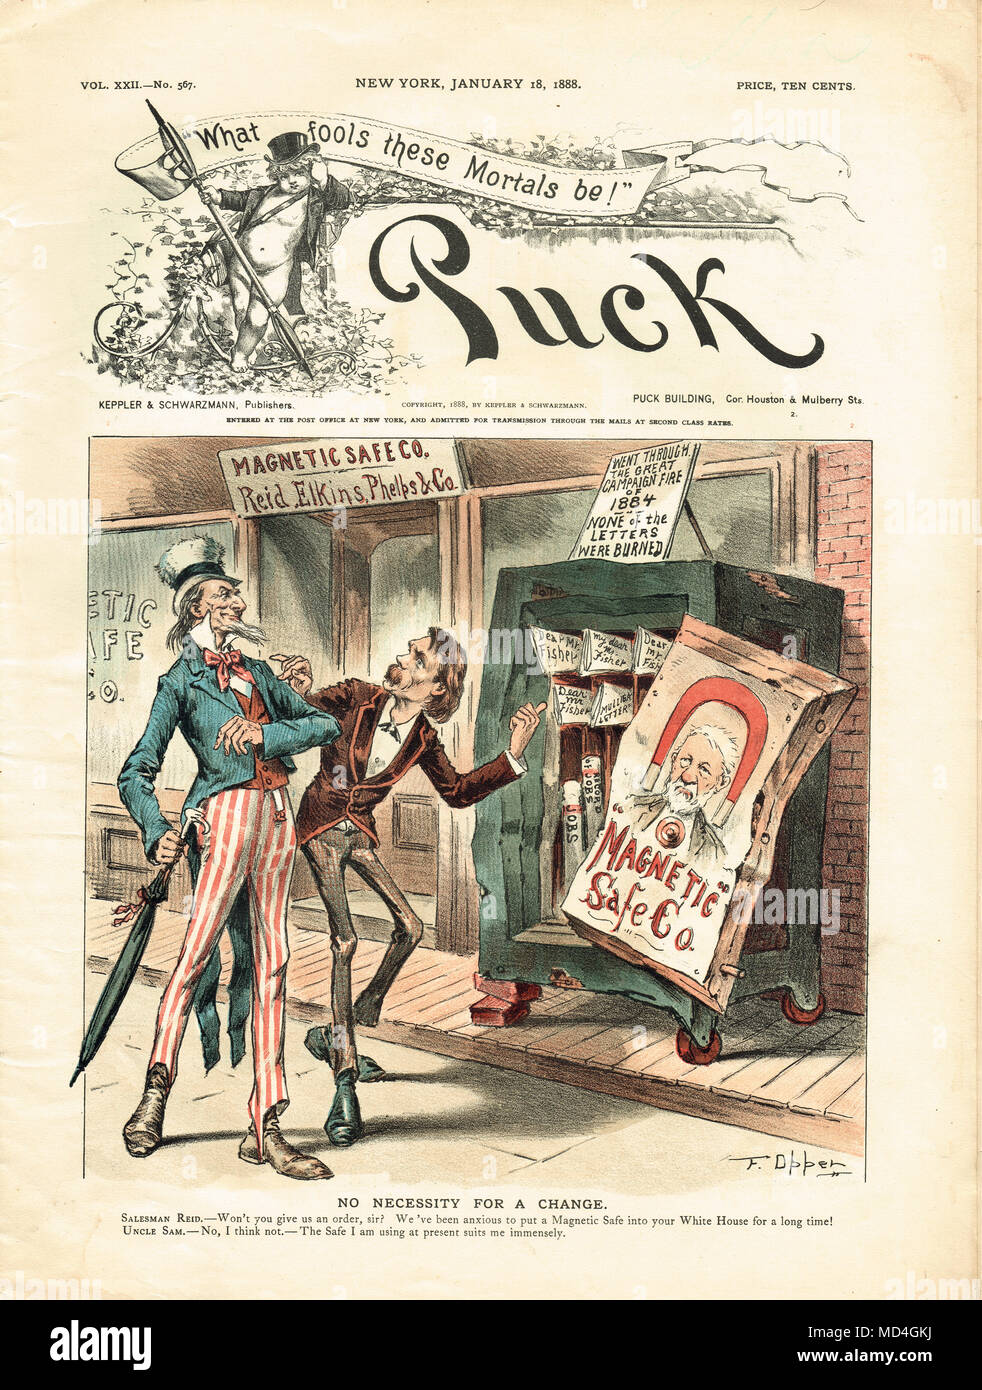 Whitelaw Reid tente de vendre un oncle Sam-magnétique, satirique Puck cartoon de 1888 Photo Stock